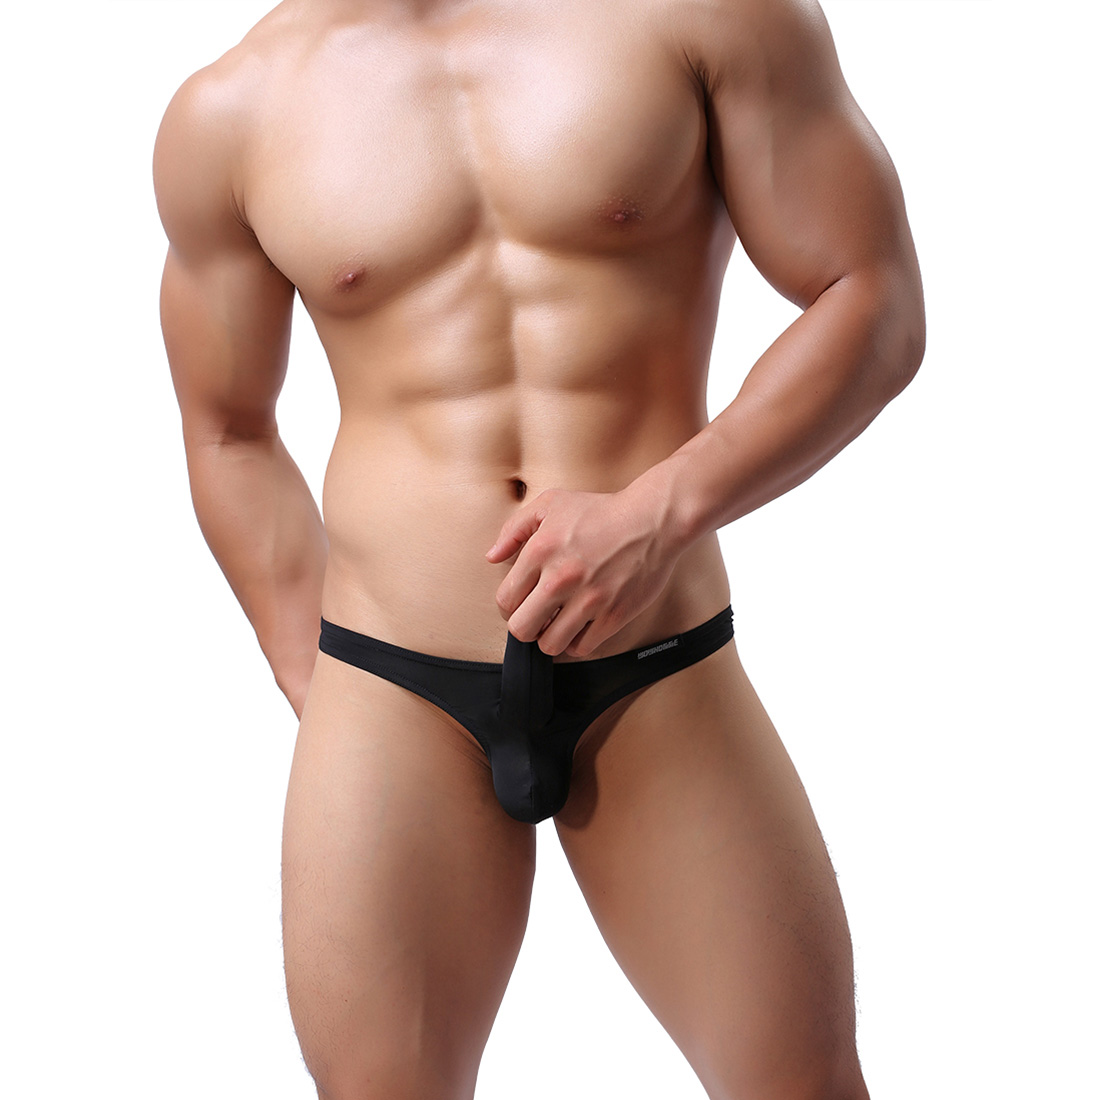 Men's Lingerie Underwear Sexy Bikini Triangle Pants ...